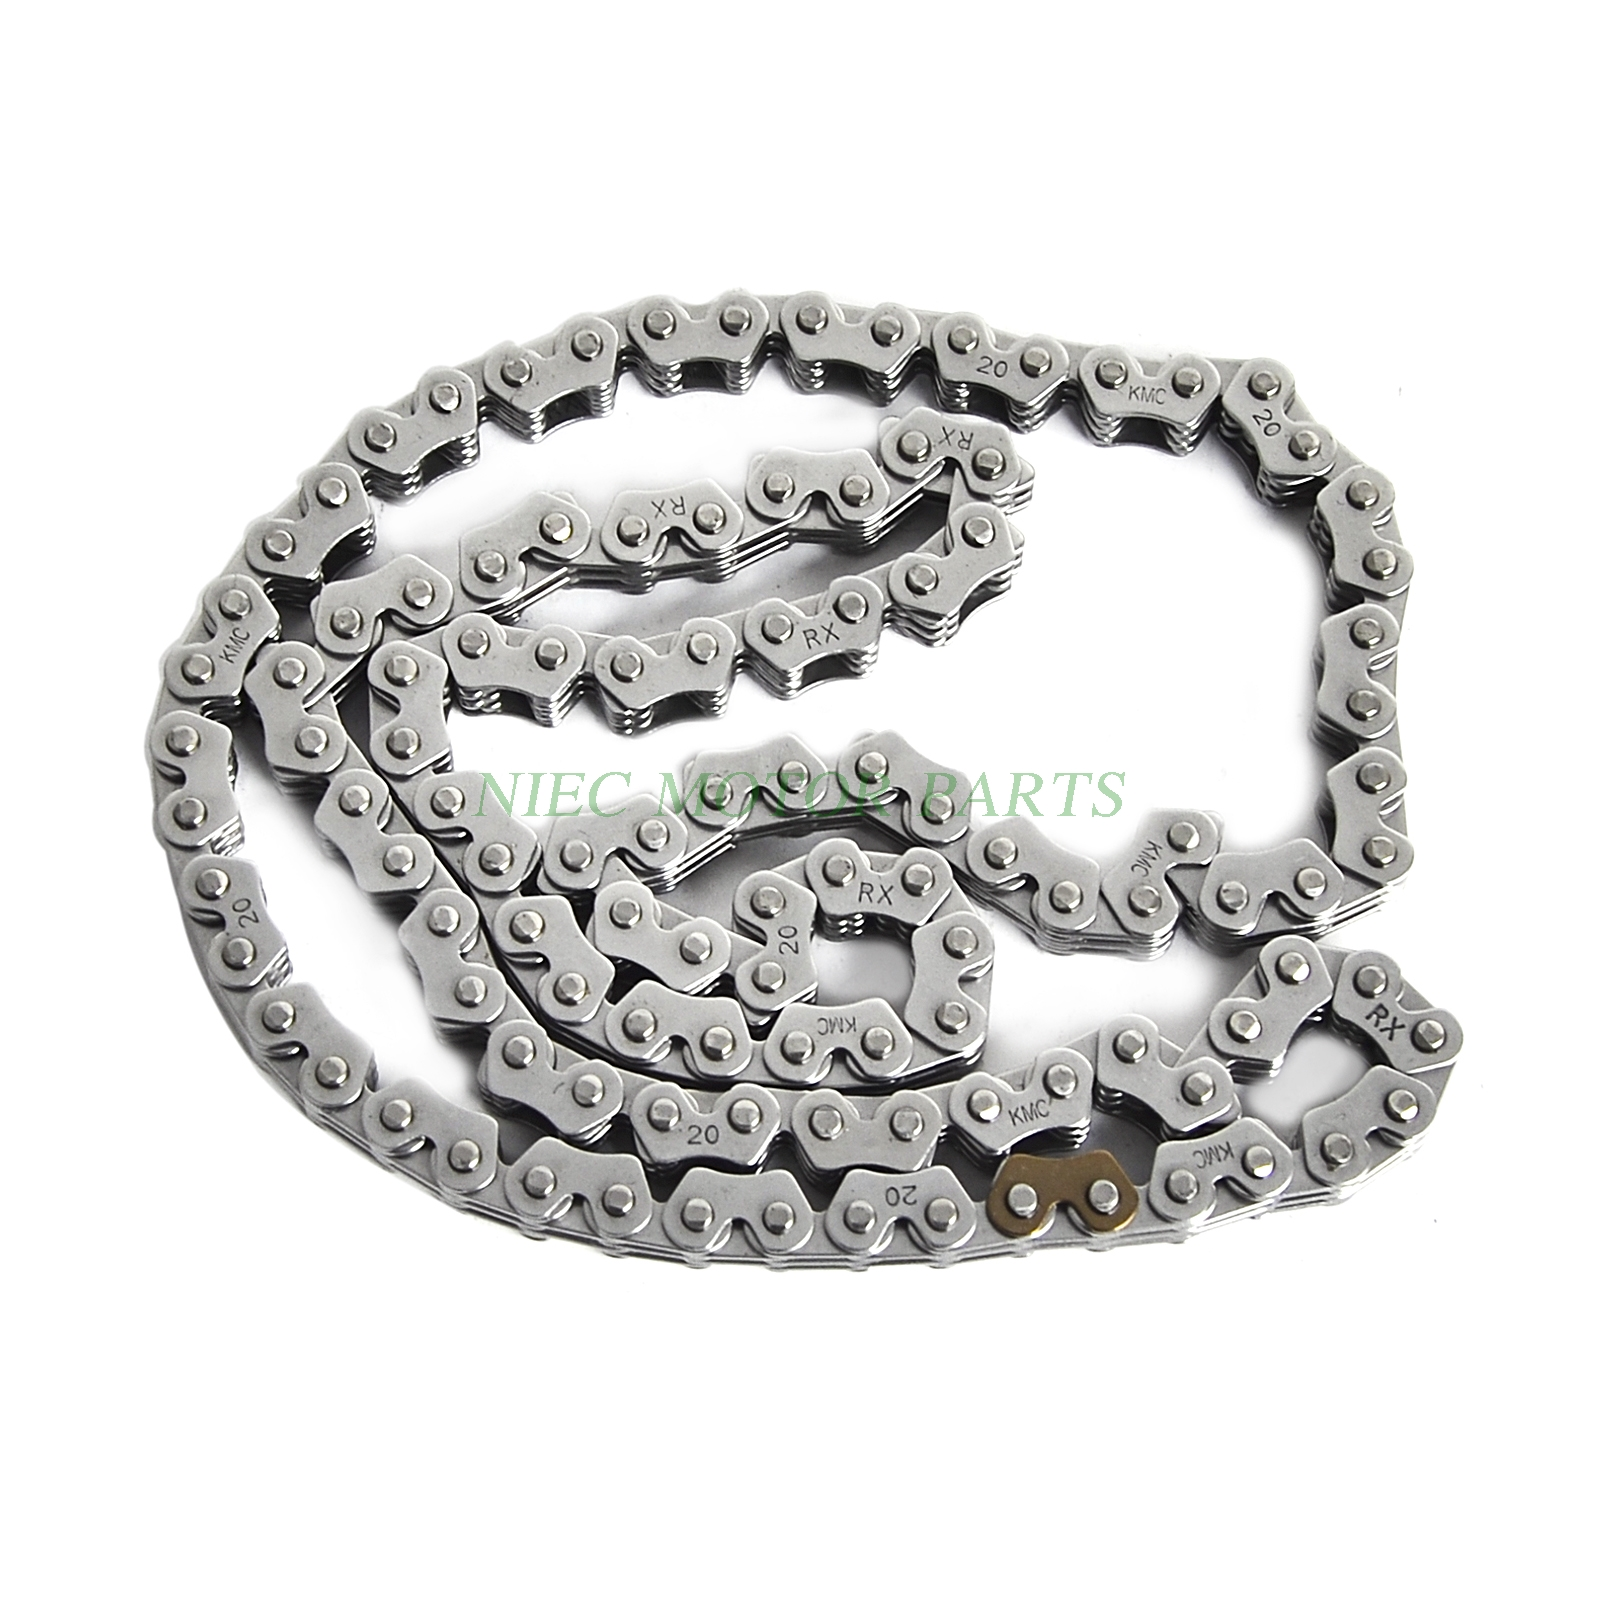 KMC Camshaft Chain Cam Timing Chain For Suzuki DR250 1995-2001 LT-Z400 2003-2015 DR-Z400E/S/SM DRZ400 2000-2016